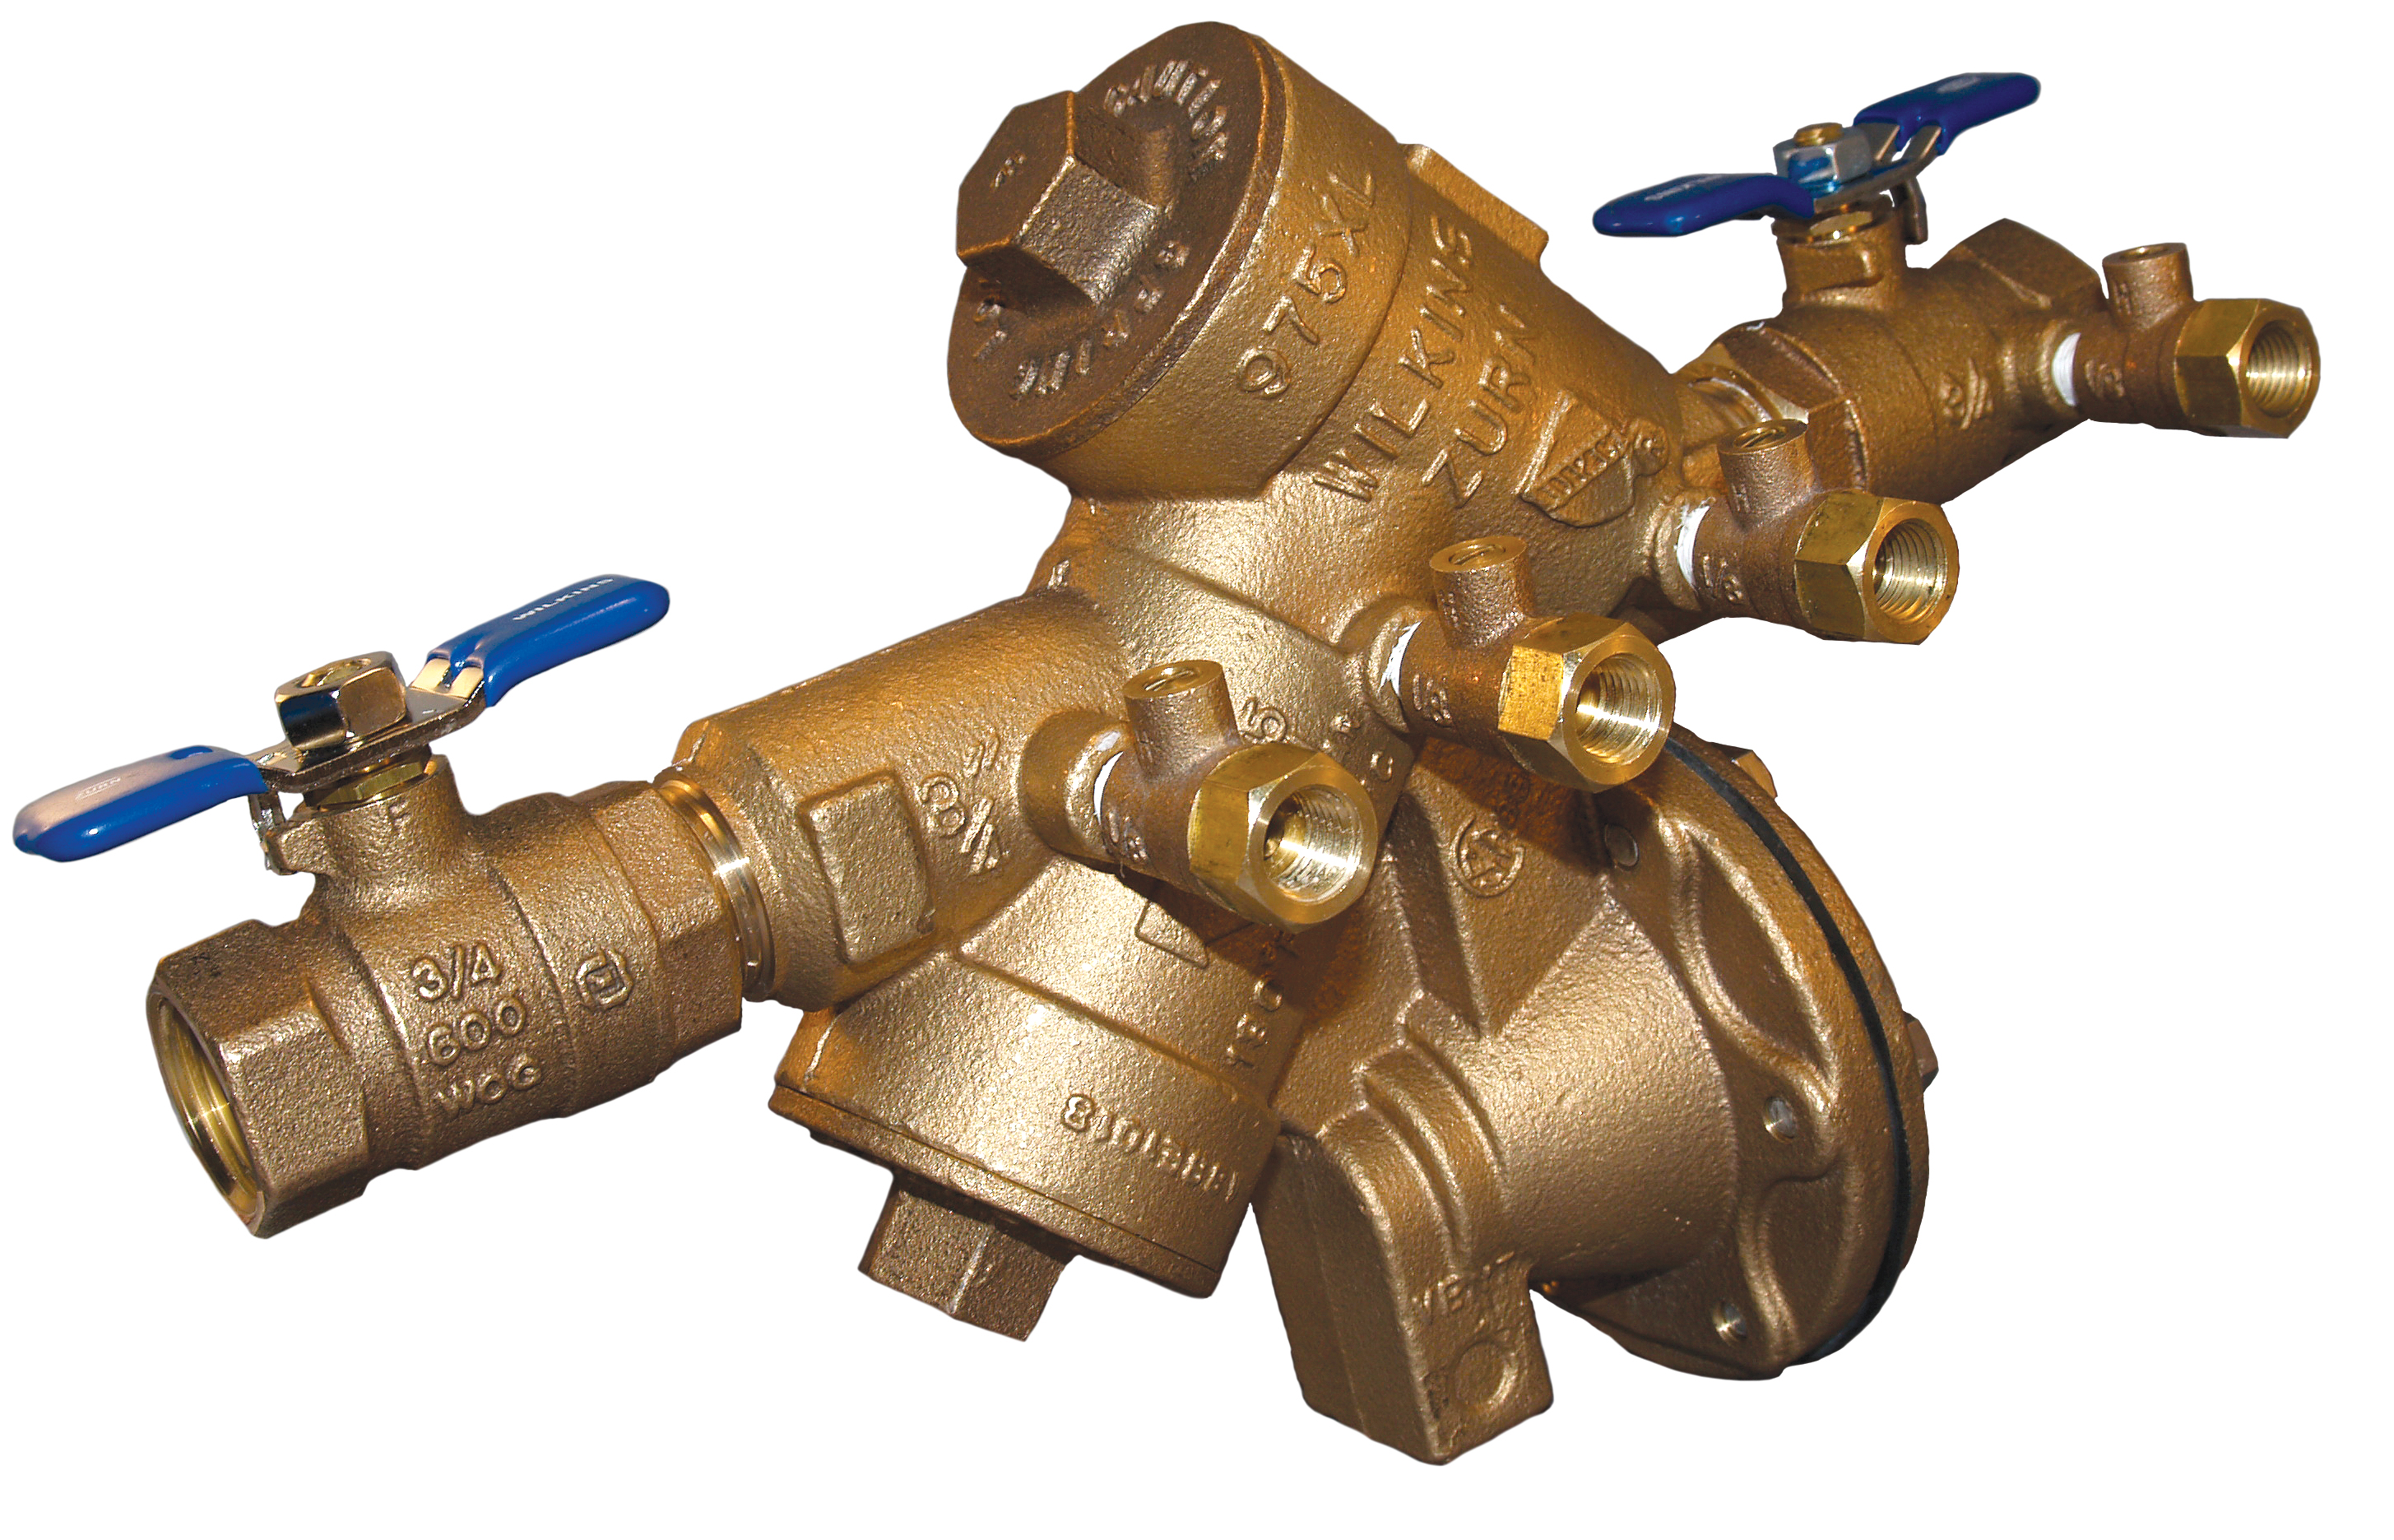 When should you schedule backflow prevention services?